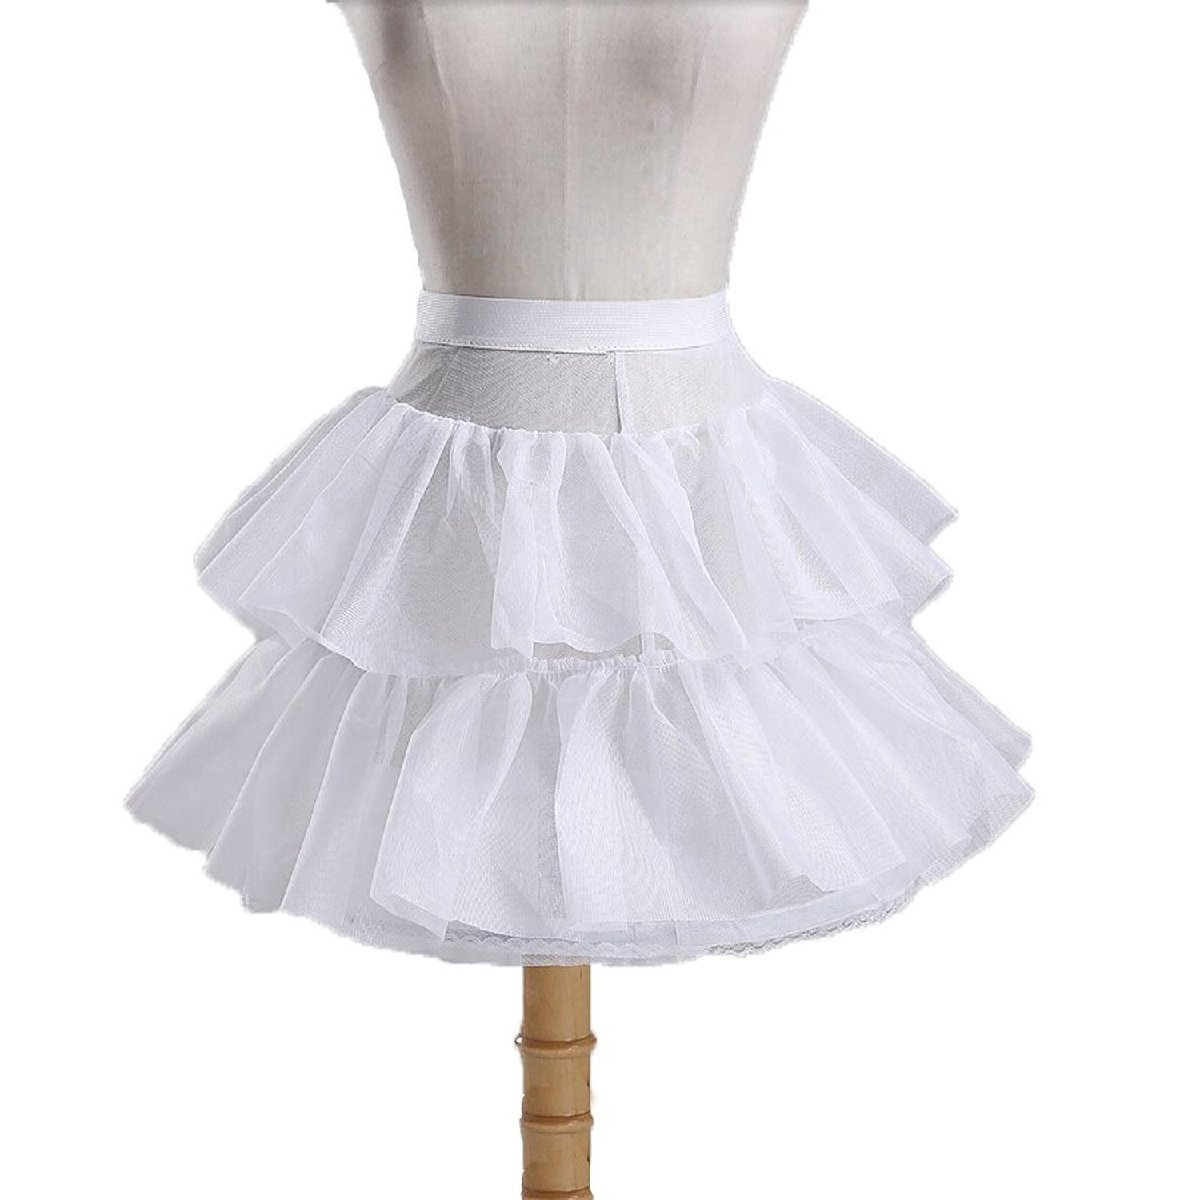 Monalia Kids 2 Layer Flower Girl Slip Wedding Underskirt Crinoline Petticoat MPC8 White by Monalia